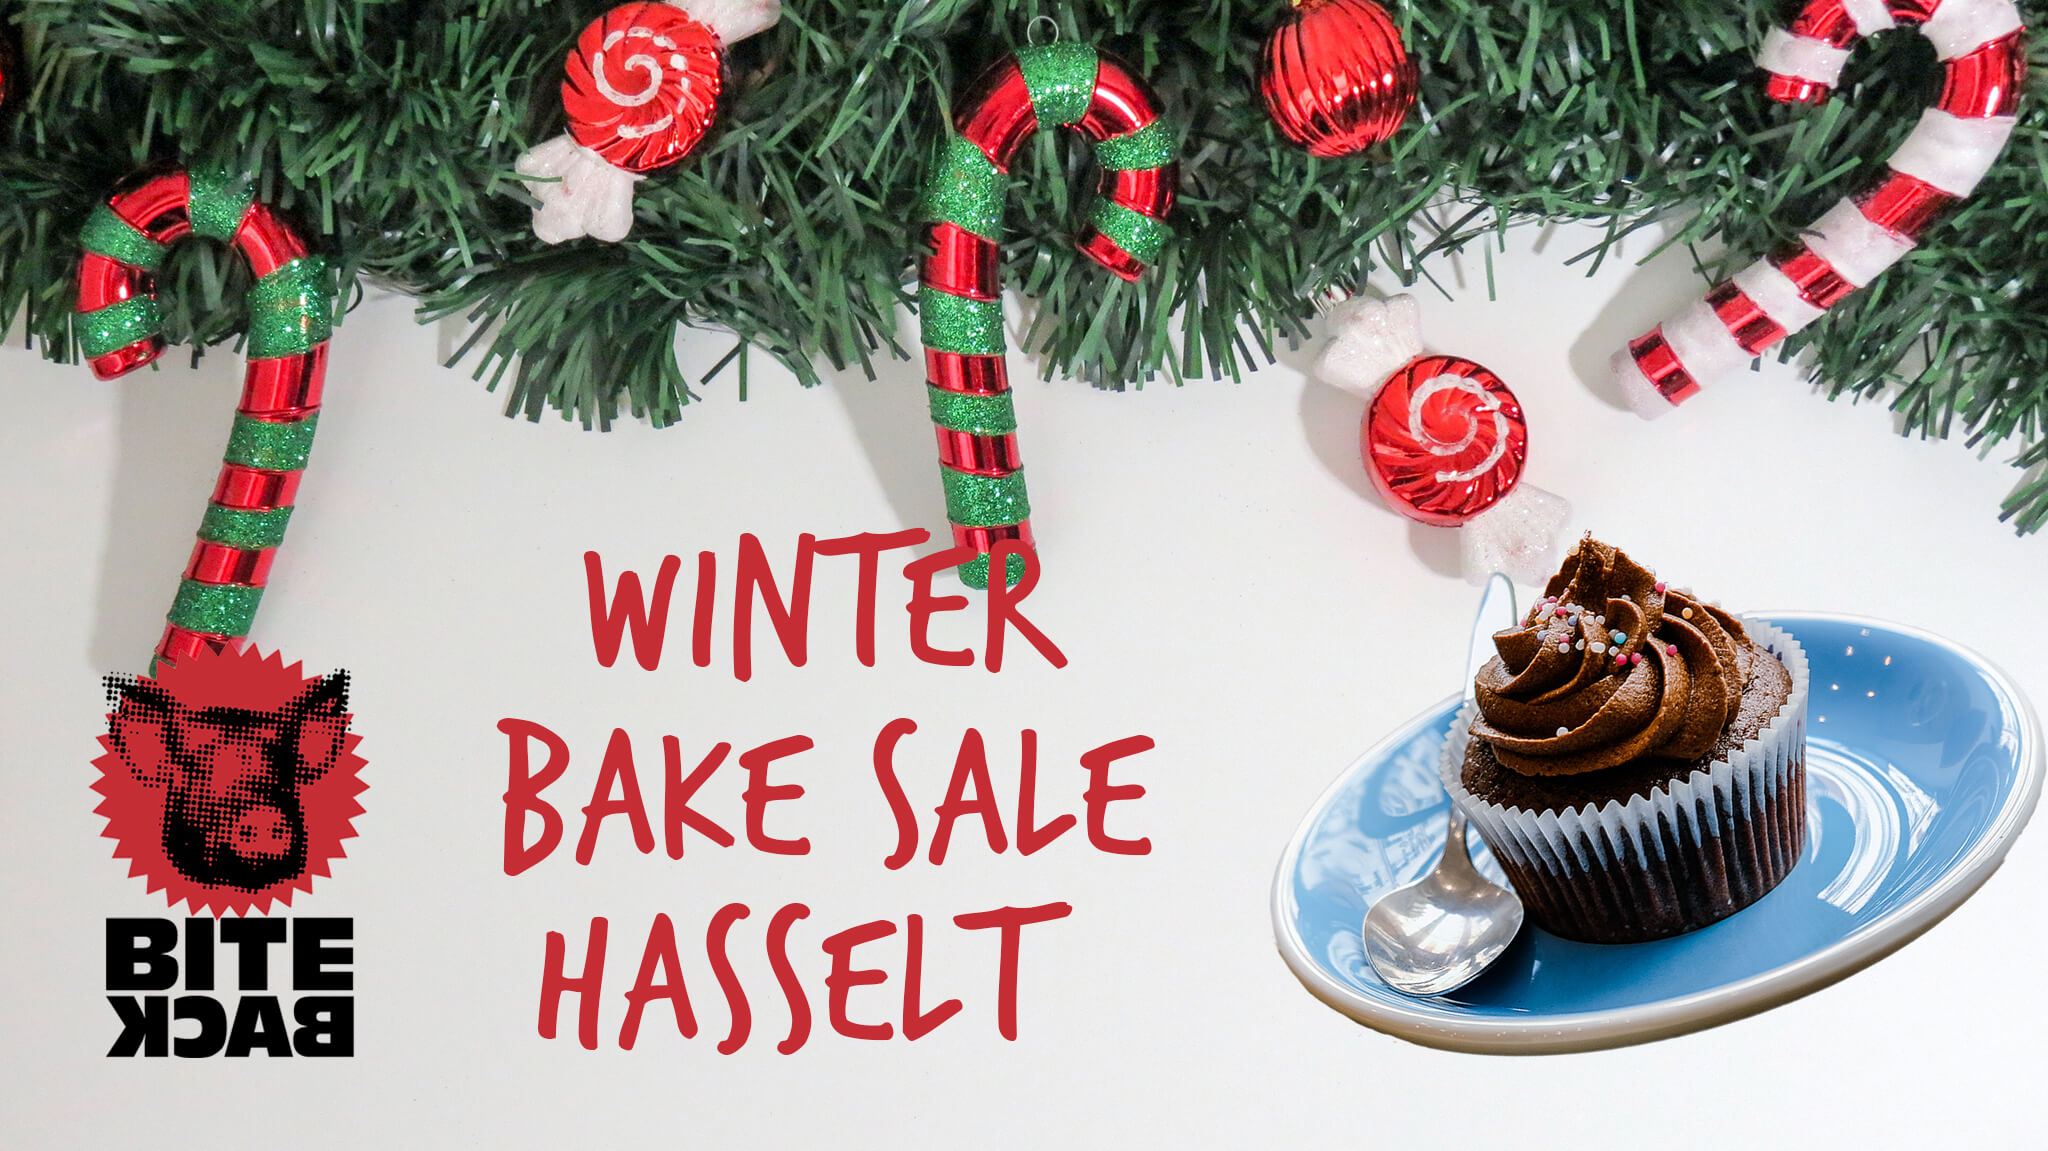 Vegan Winter Bake Sale Hasselt